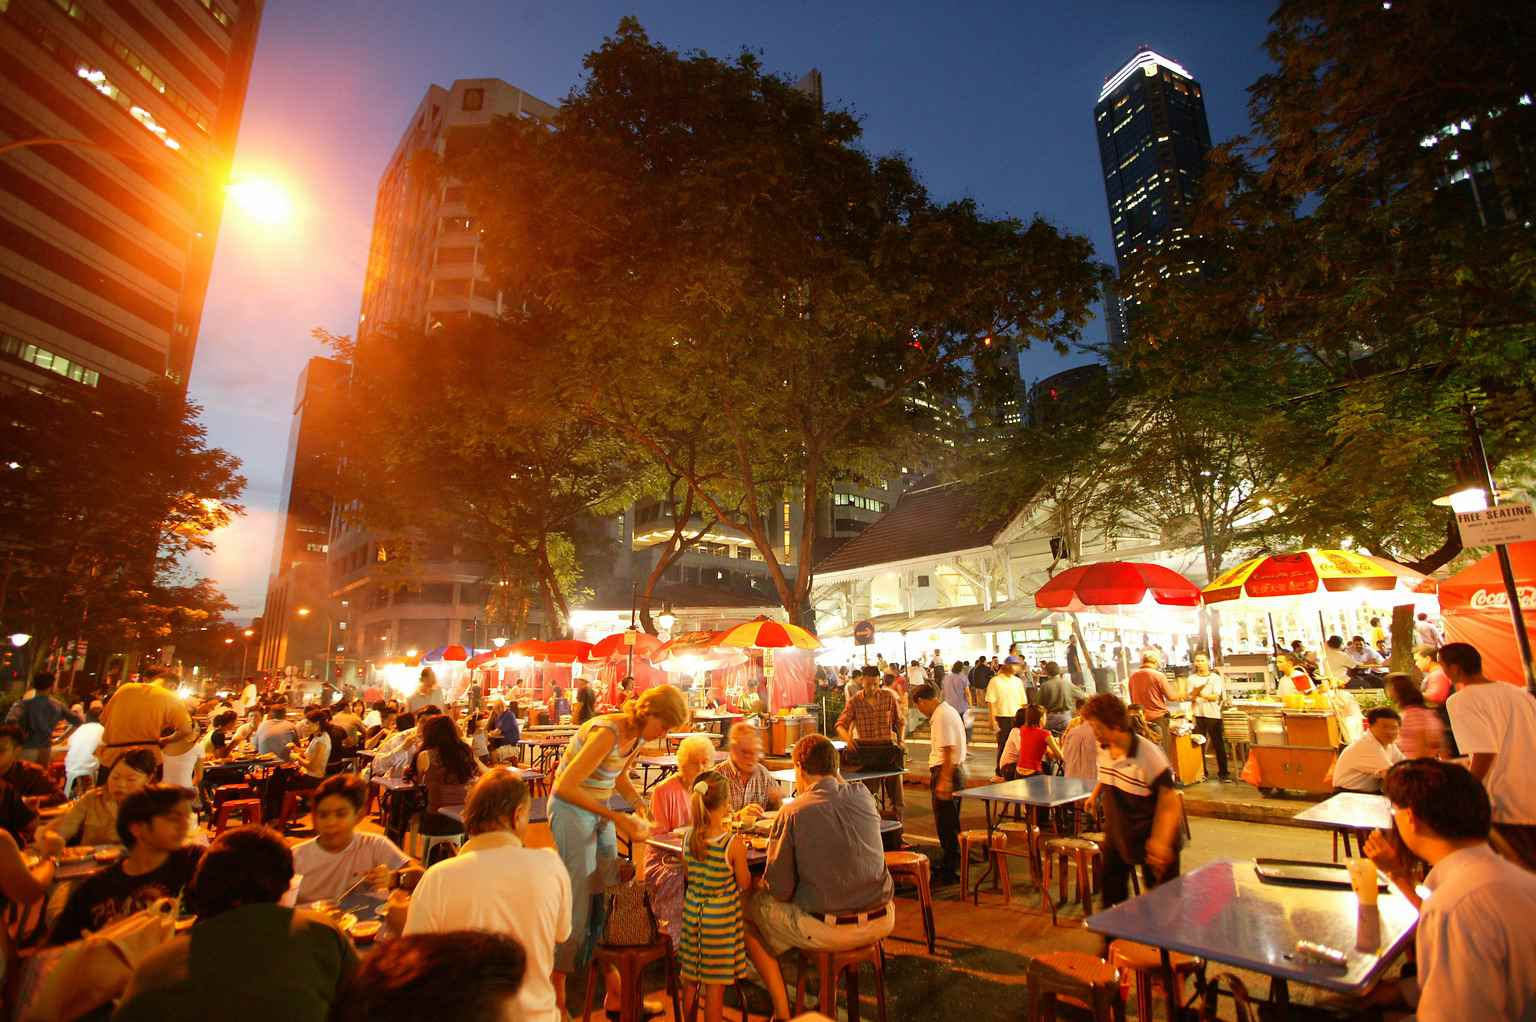 Hawker Culture Belongs To Singapore Because We Have More Money